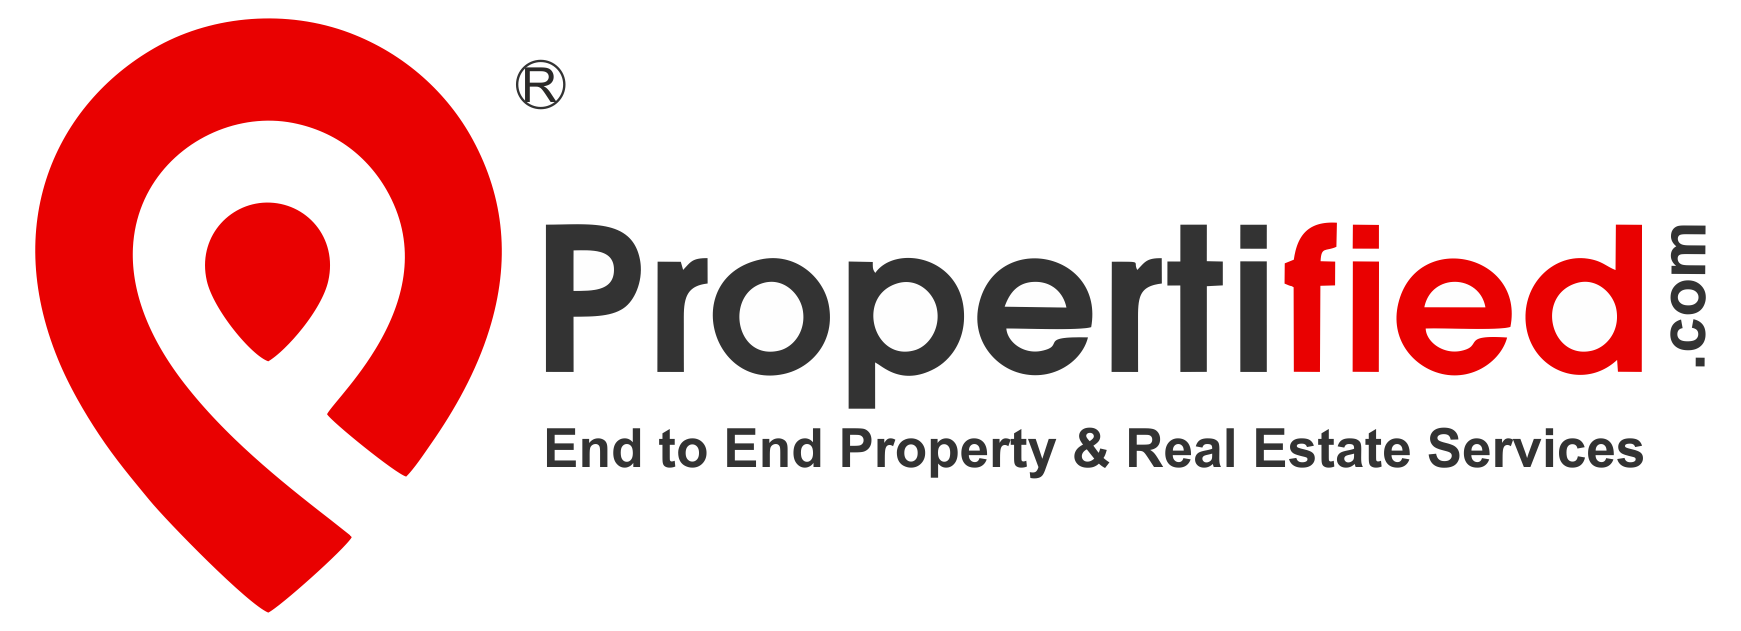 sell property in bangalore,property lawyers in bangalore,land and property search bangalore,land and property transfer